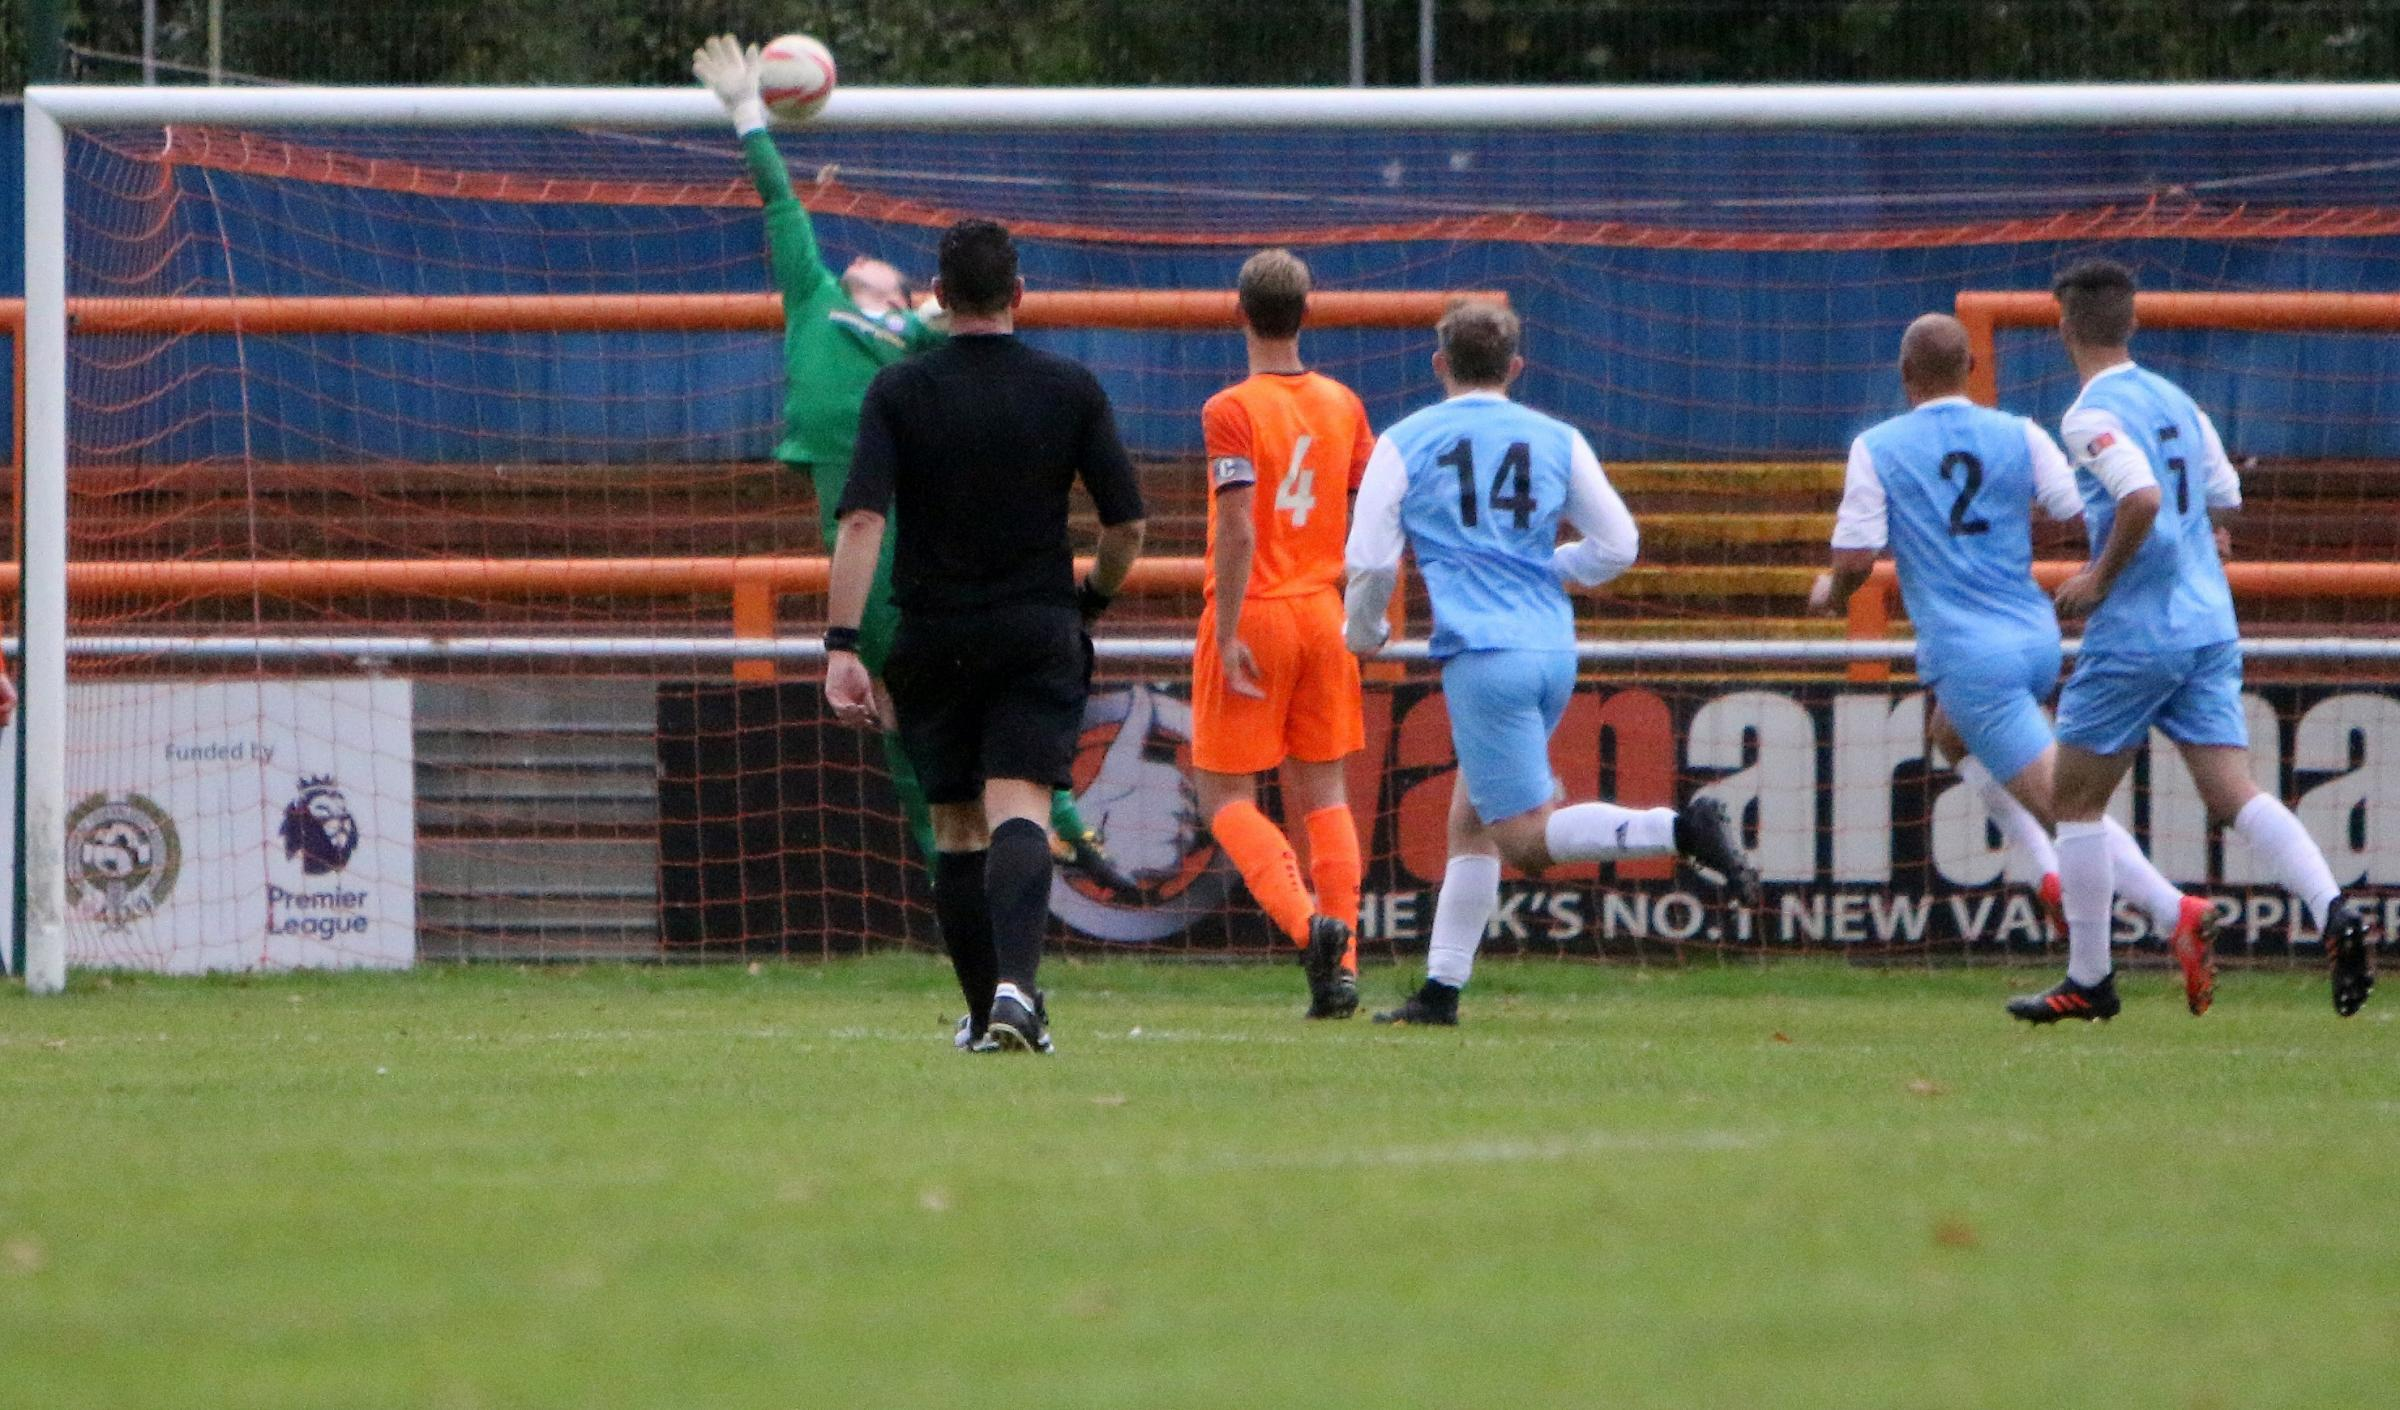 So close: Holland (wearing their blue change strip) are denied by the woodwork against Braintree Town Reserves.